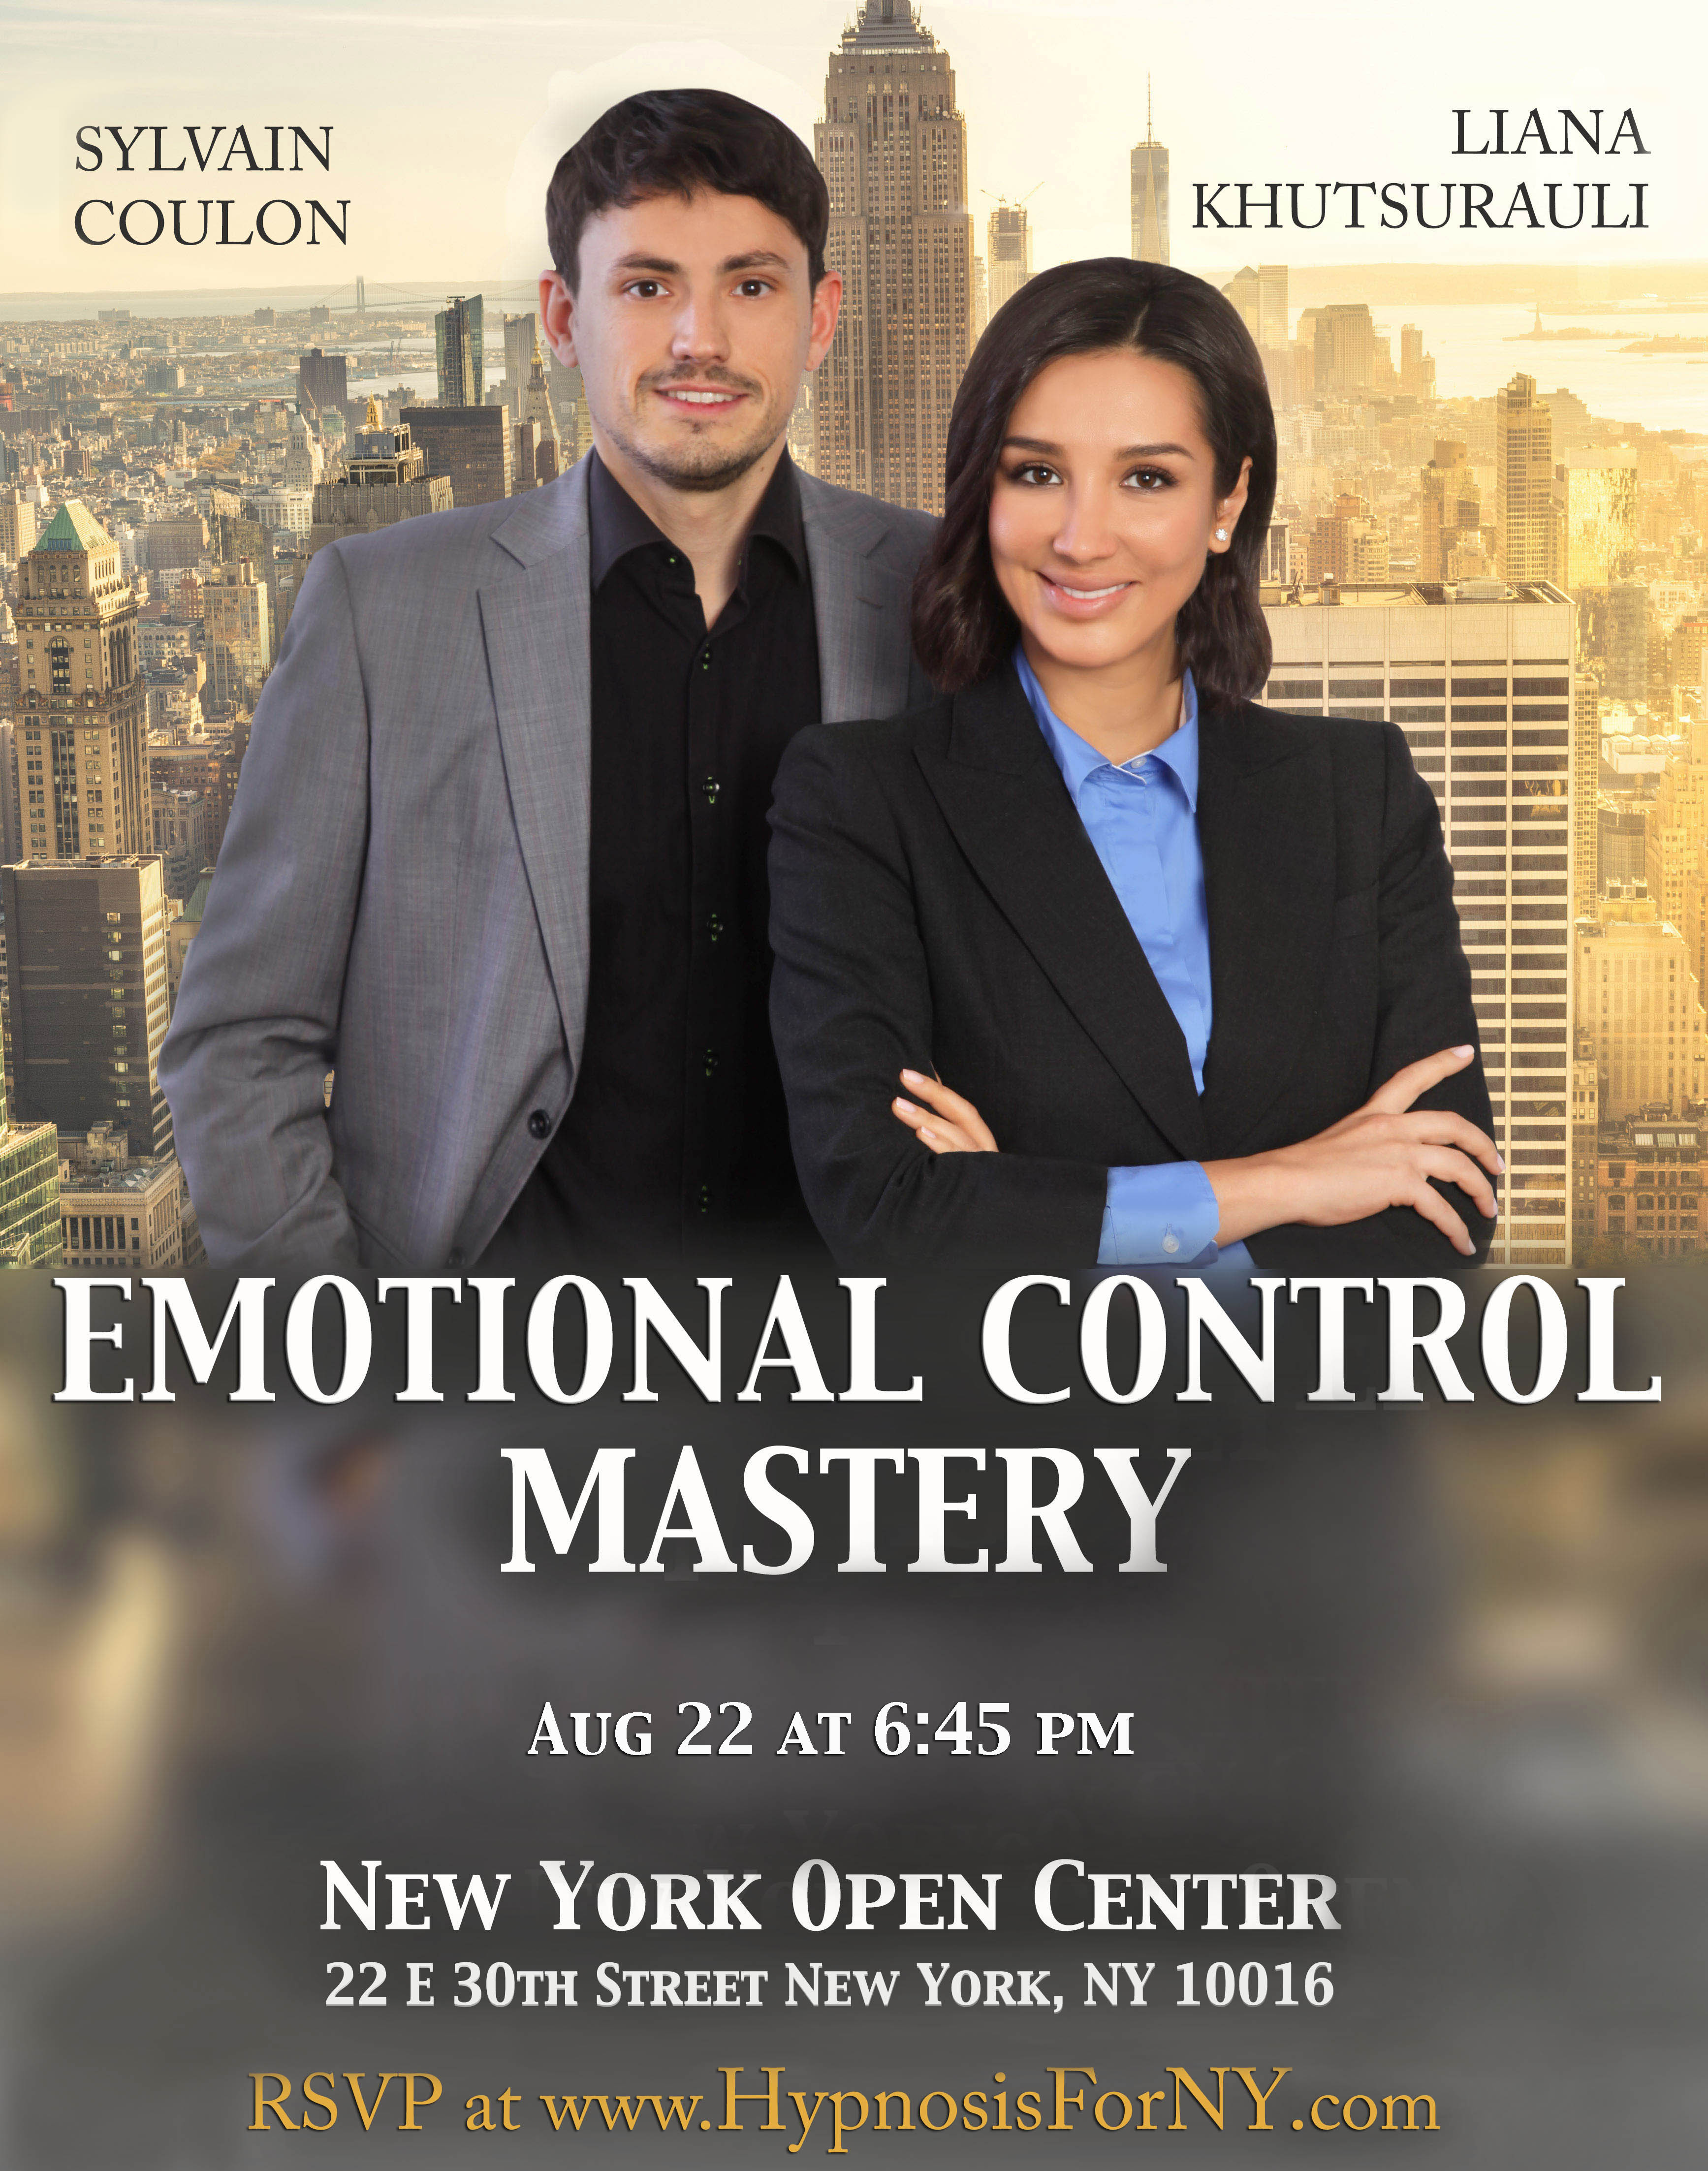 Emotional Control Mastery August 22 in New York